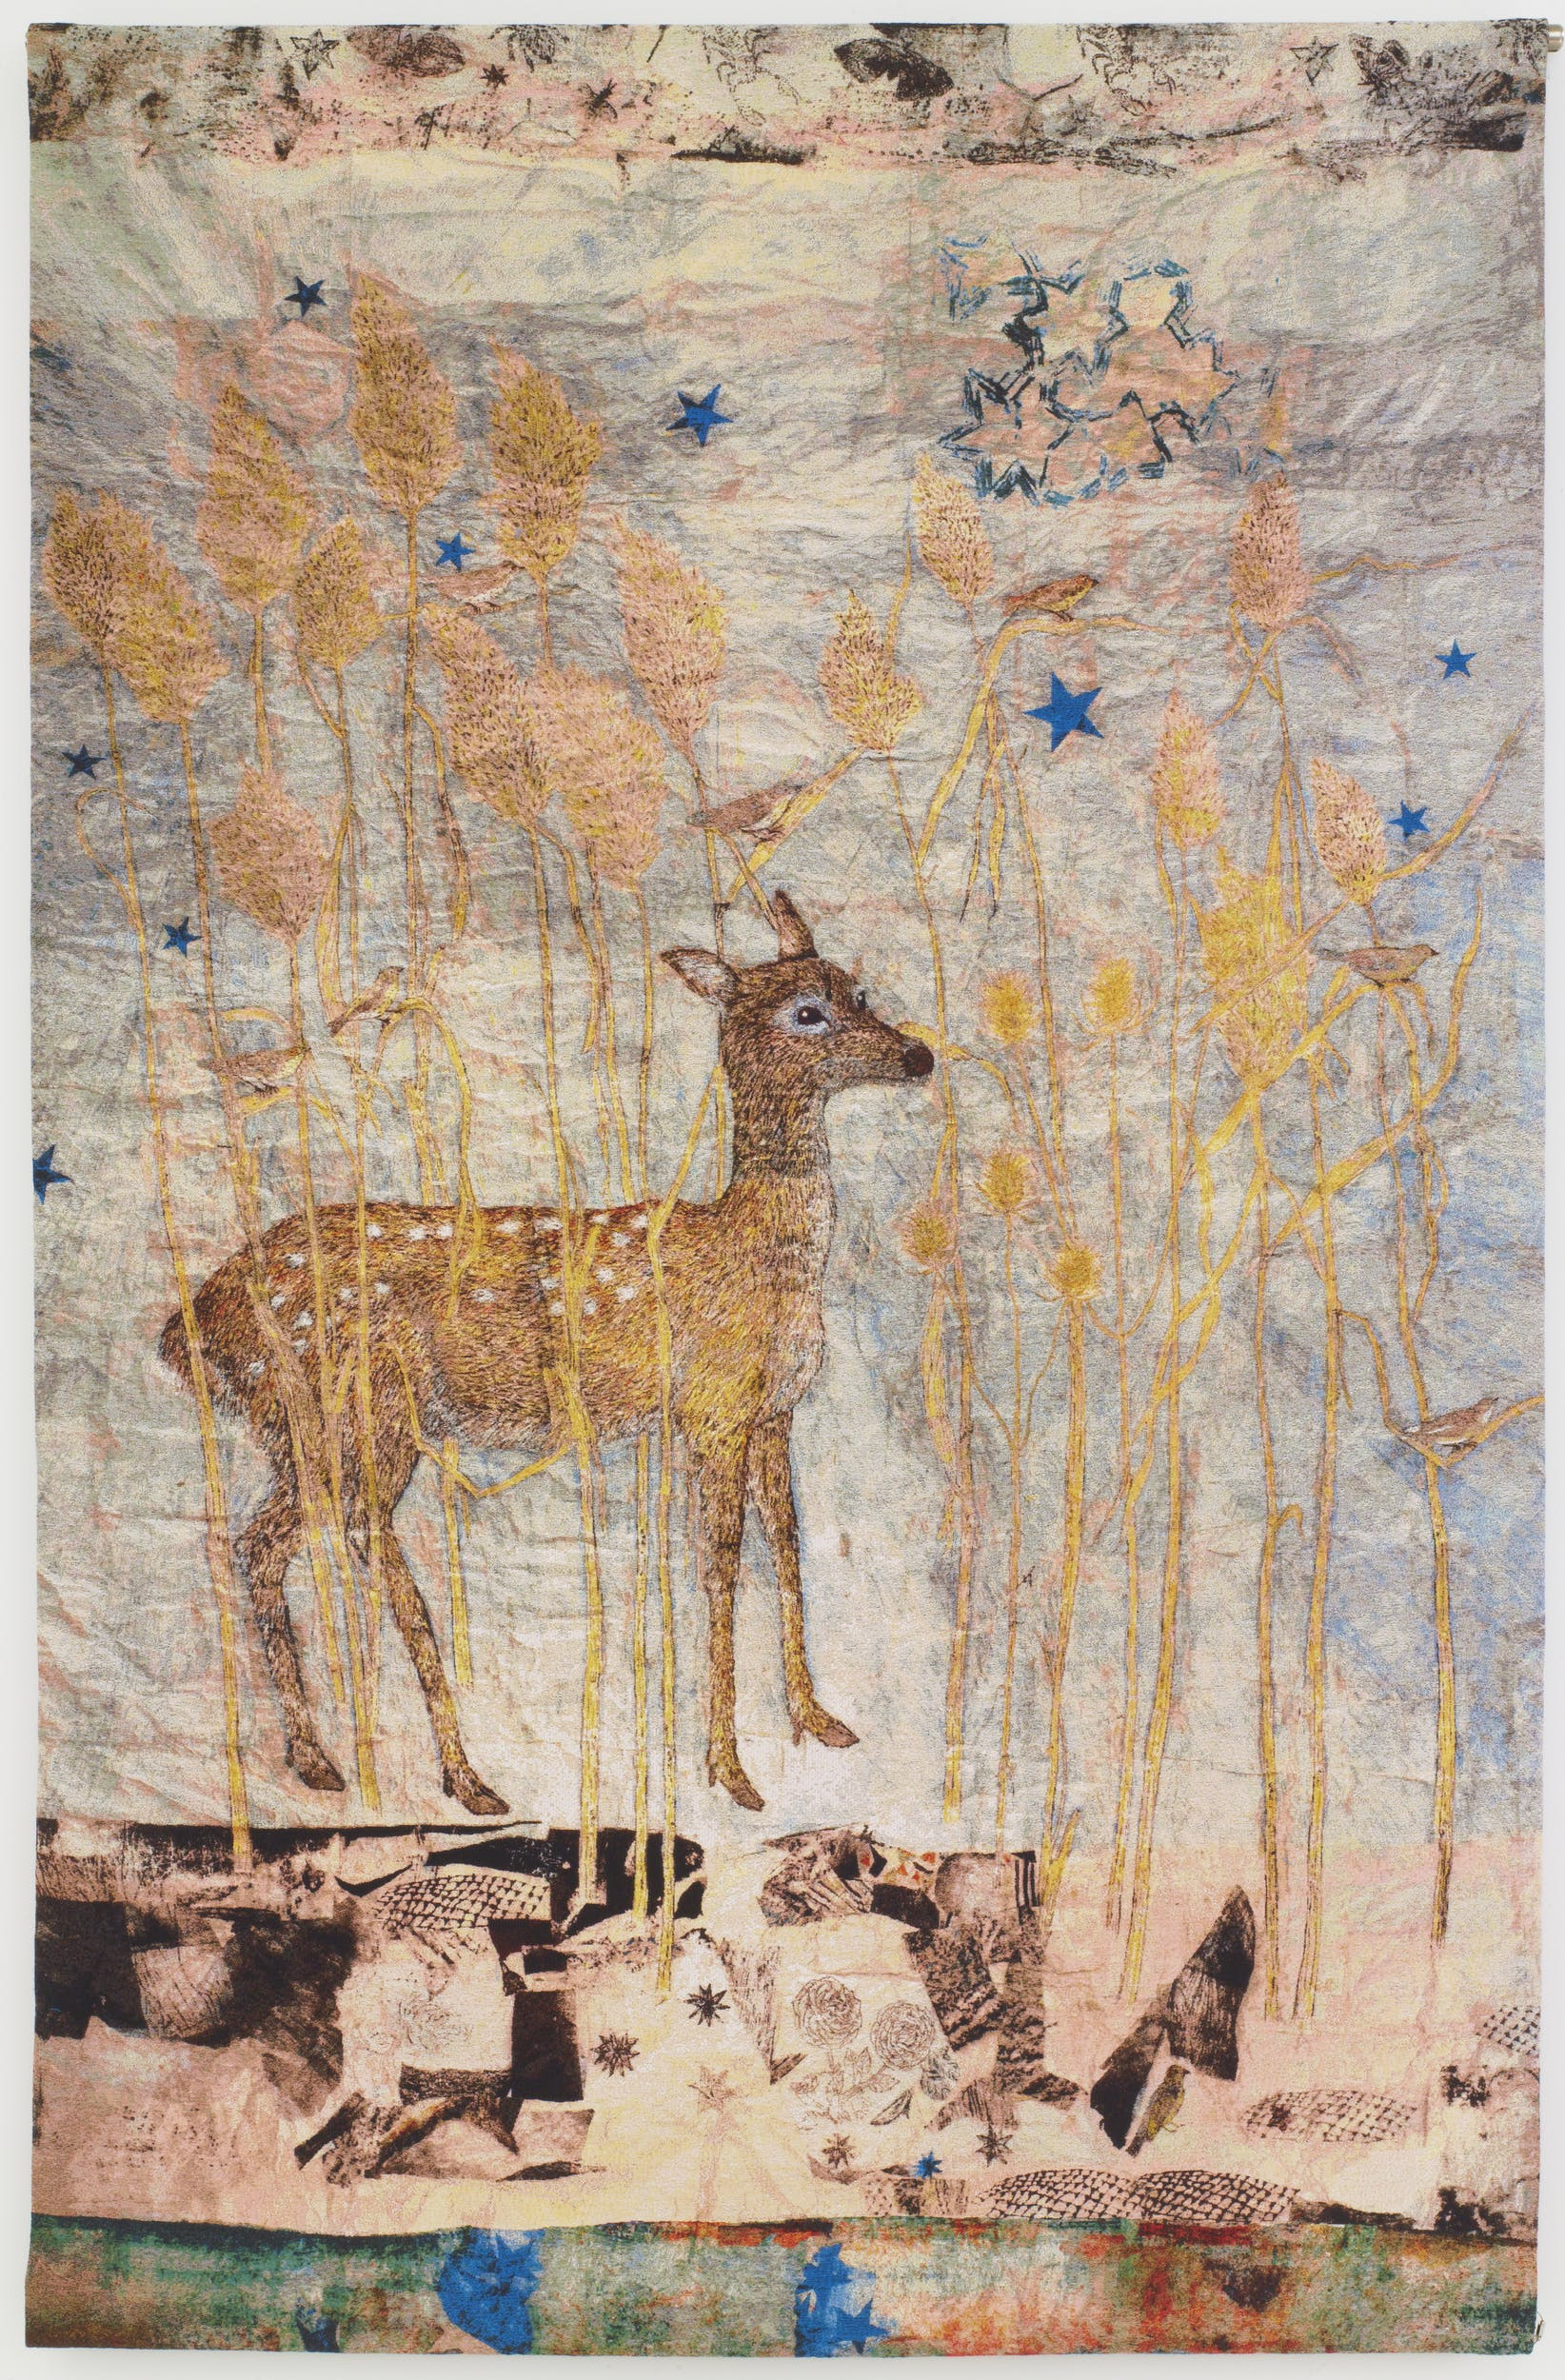 Fortune 2014 arazzo in cotone jacquard con interventi pittorici Oakland, California, Magnolia Editions Per gentile concessione dell'artista e della Pace Gallery I Fortune 2014 cotton Jacquard tapestry and hand-painting Oakland, California, Magnolia Editions Courtesy of the artist and Pace Gallery